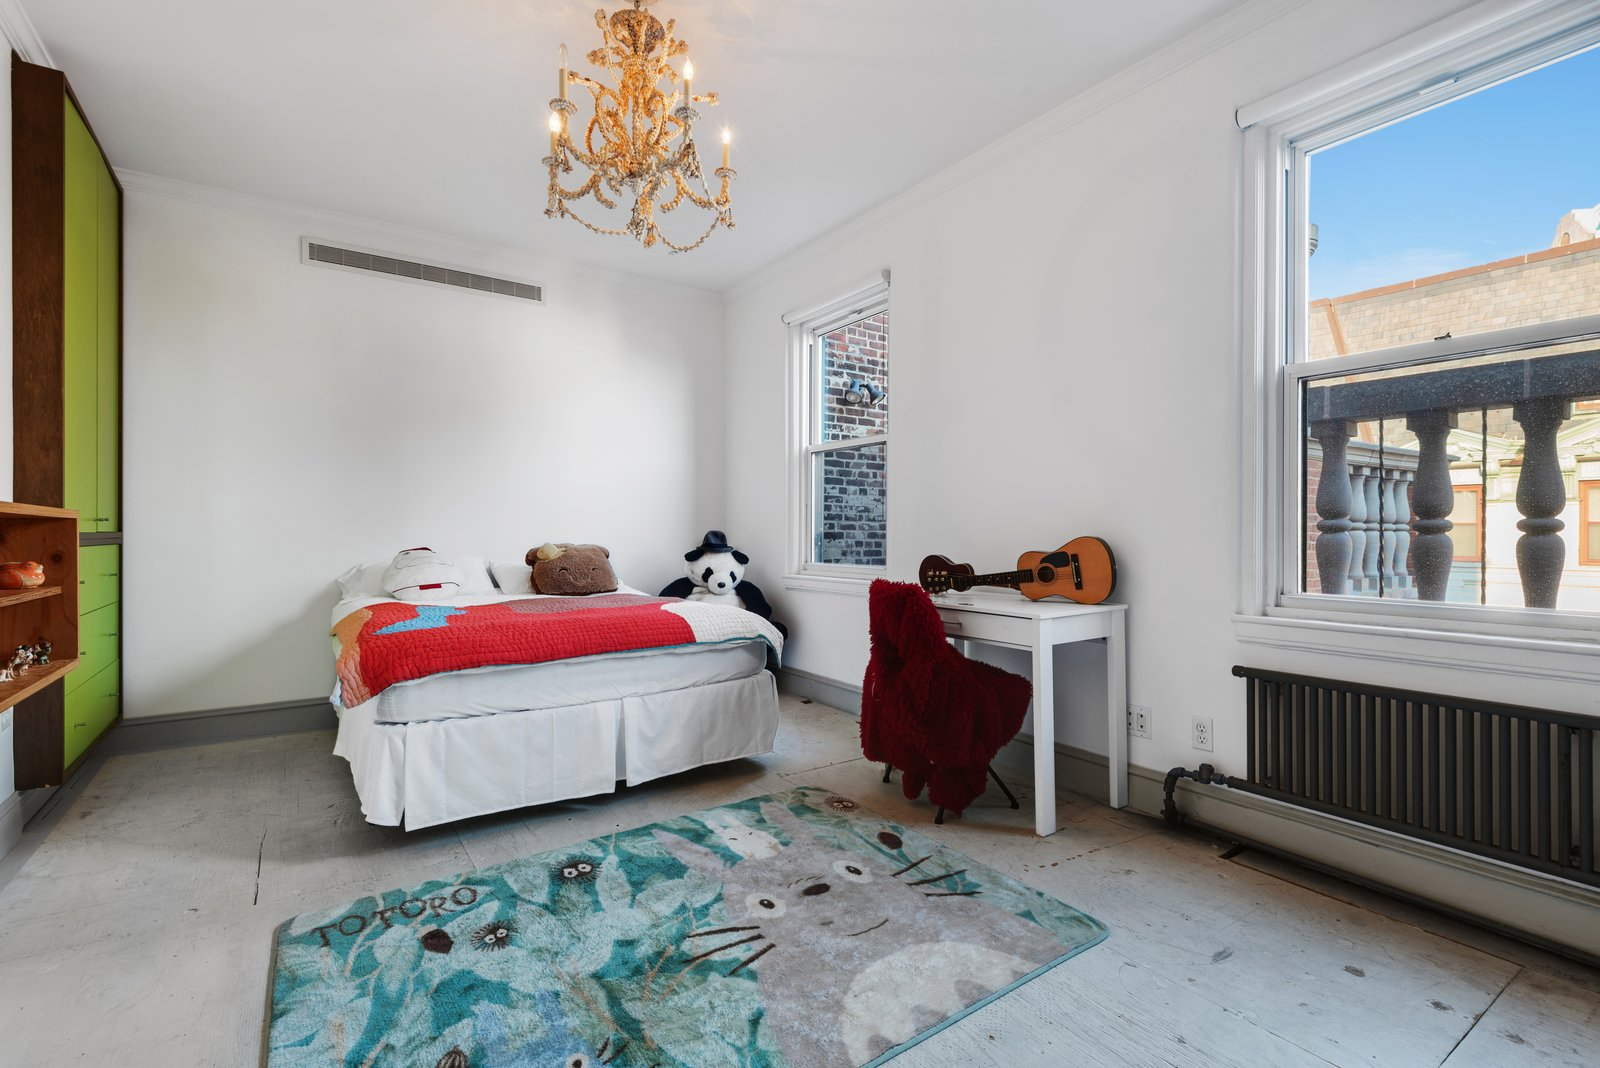 Kids Room, Bed, Neutral Gender, Desk, Bedroom Room Type, Pre-Teen Age, Storage, Concrete Floor, Bookcase, and Chair The child's bedroom.   Photo 7 of 12 in Björk Puts Her Brooklyn Heights Penthouse on the Market For $9M